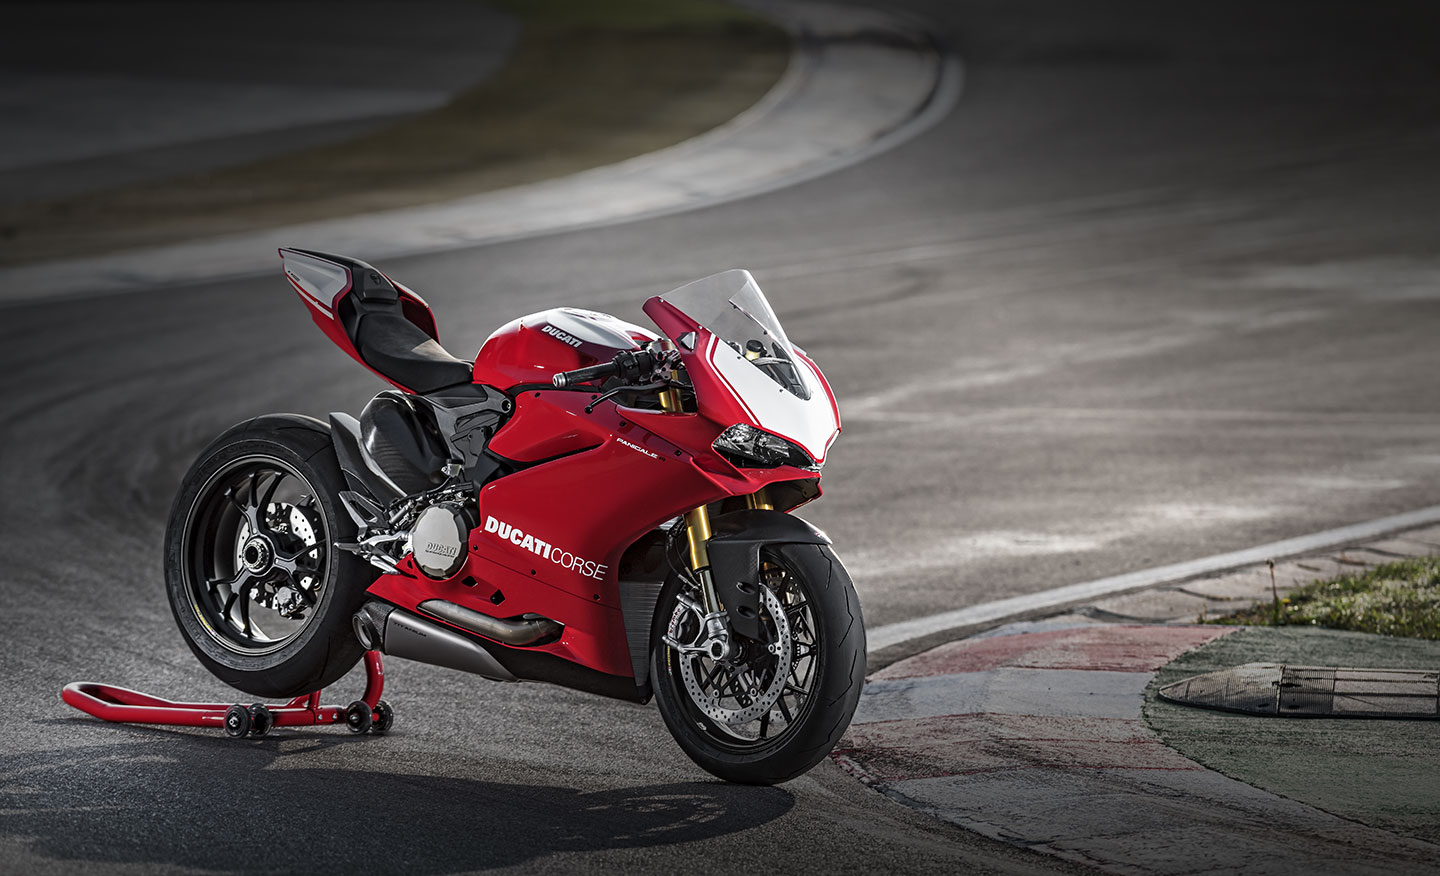 Ducati 1299 Panigale S 4k Wallpapers: Ducati 1299 Panigale S HQ Wallpapers